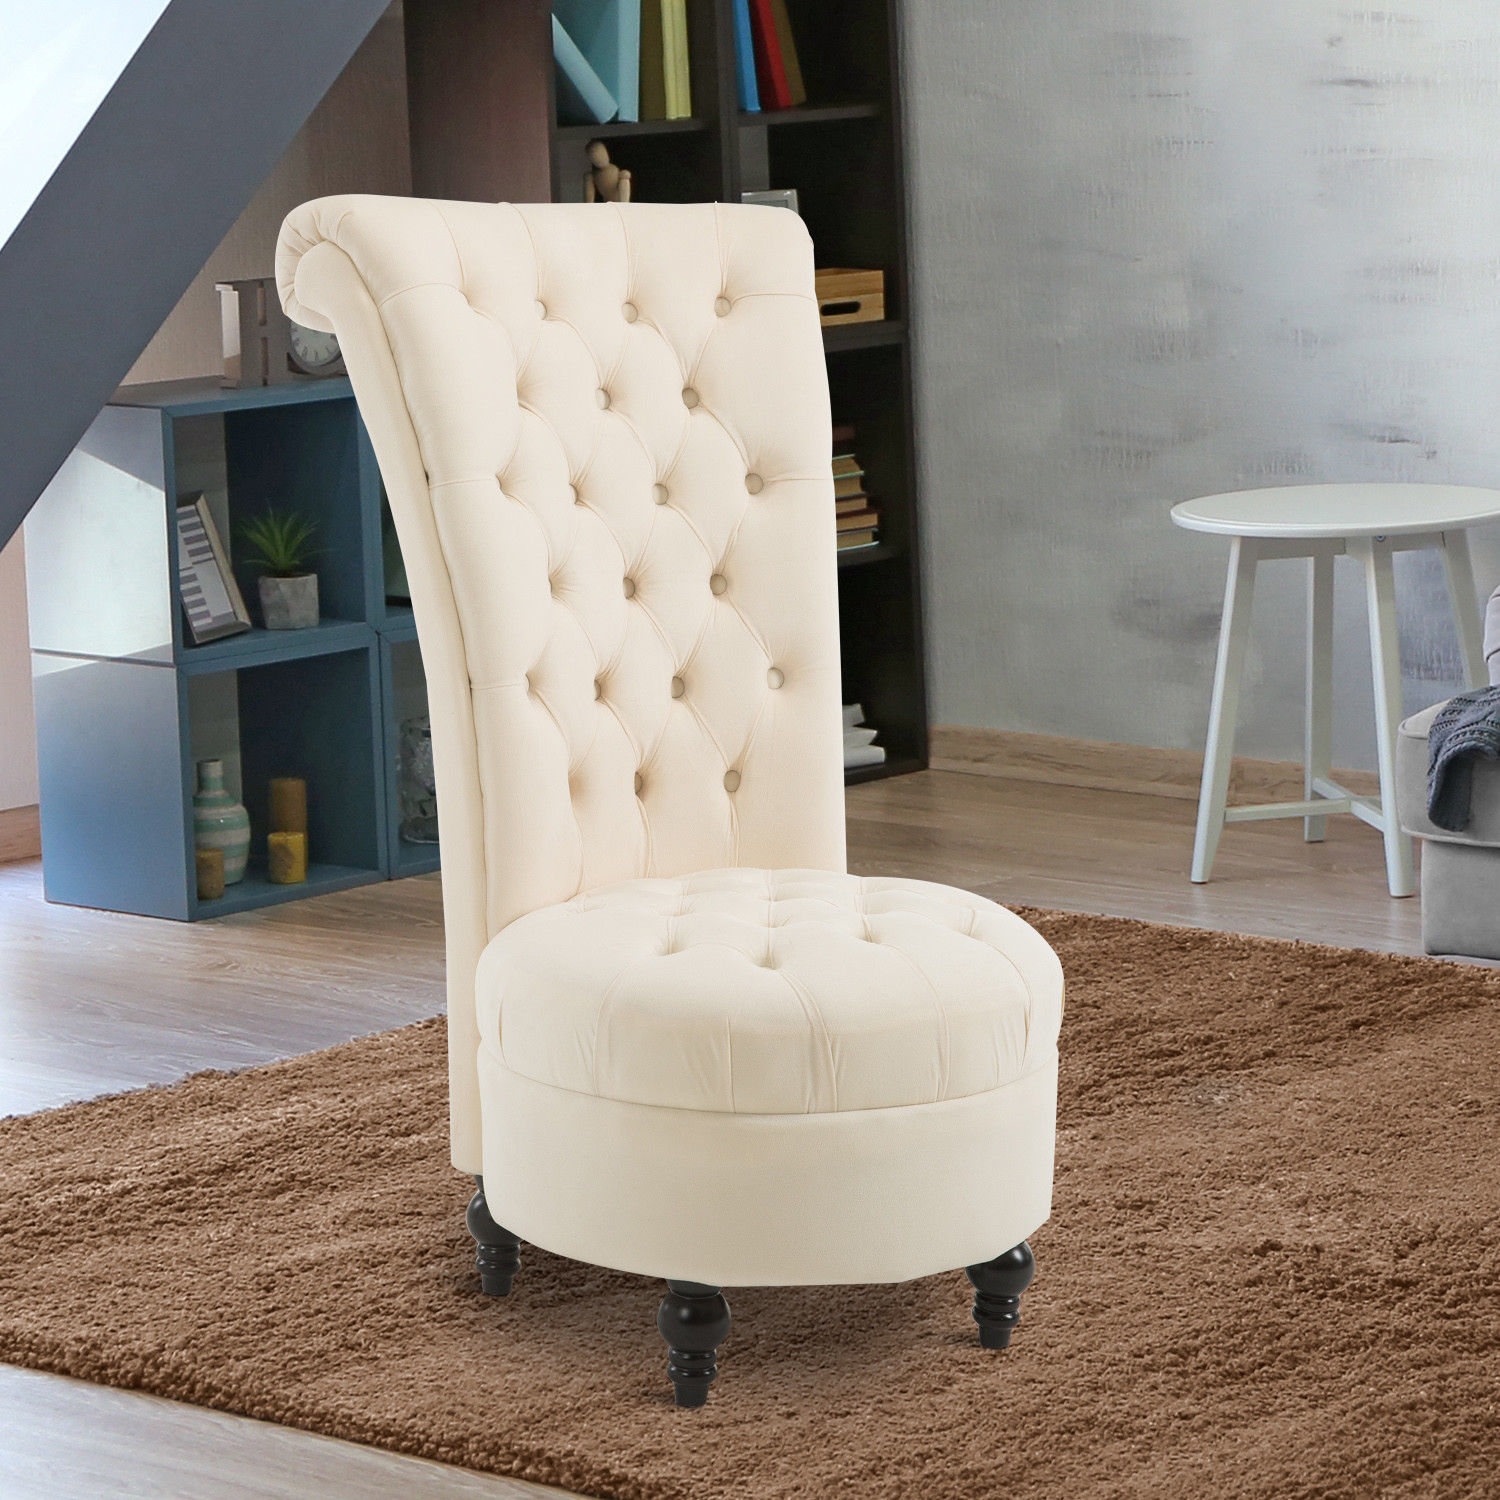 Groovy Details About Homcom Velvet Accent Chair Upholstered High Back Tub Sofa Living Room White Bralicious Painted Fabric Chair Ideas Braliciousco